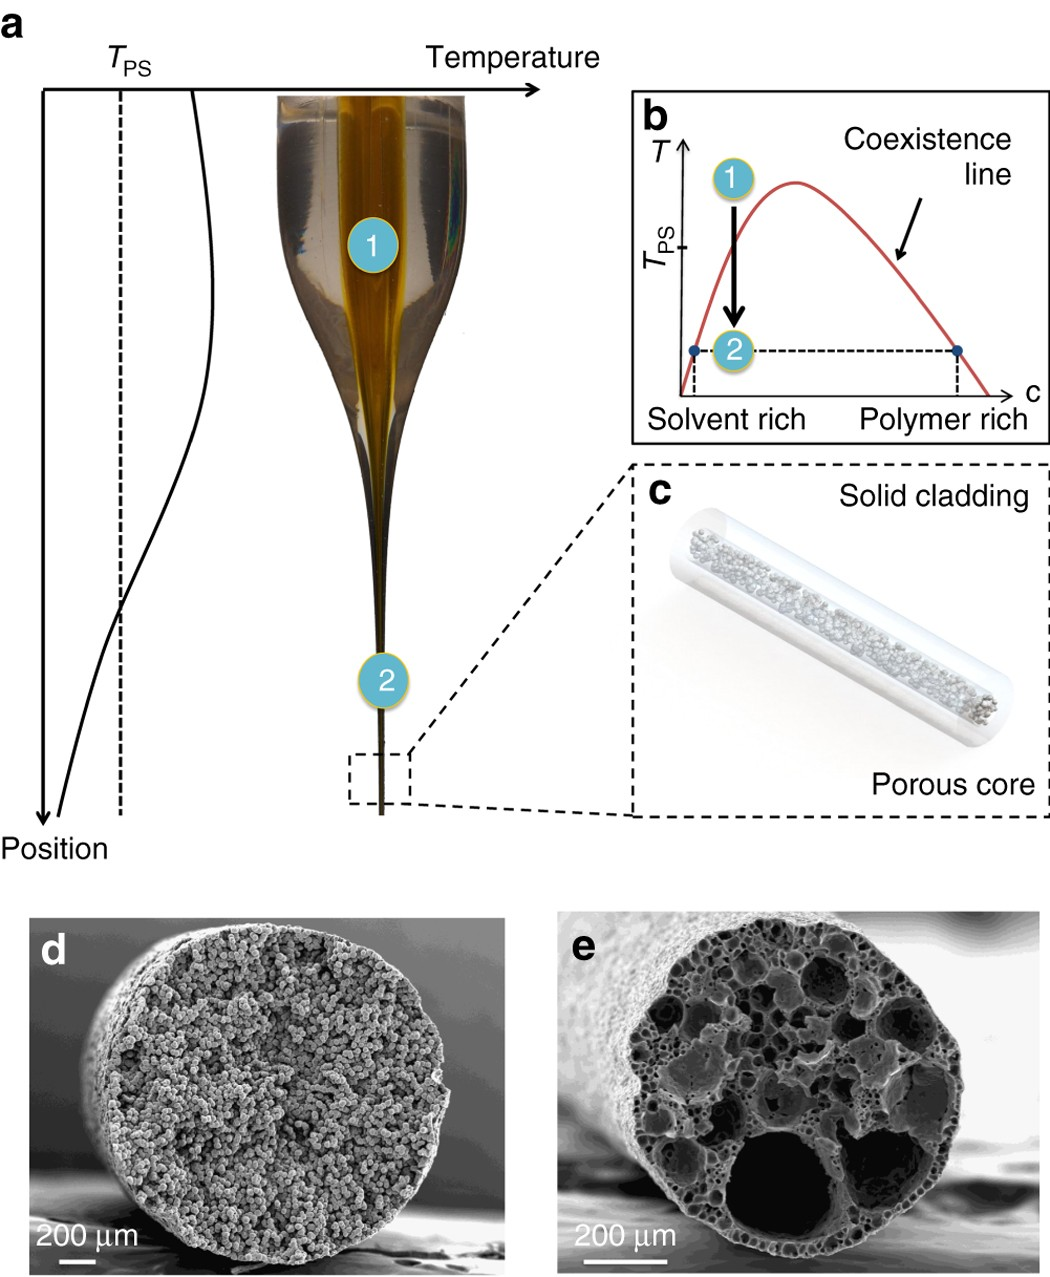 Thermally-drawn fibers with spatially-selective porous domains